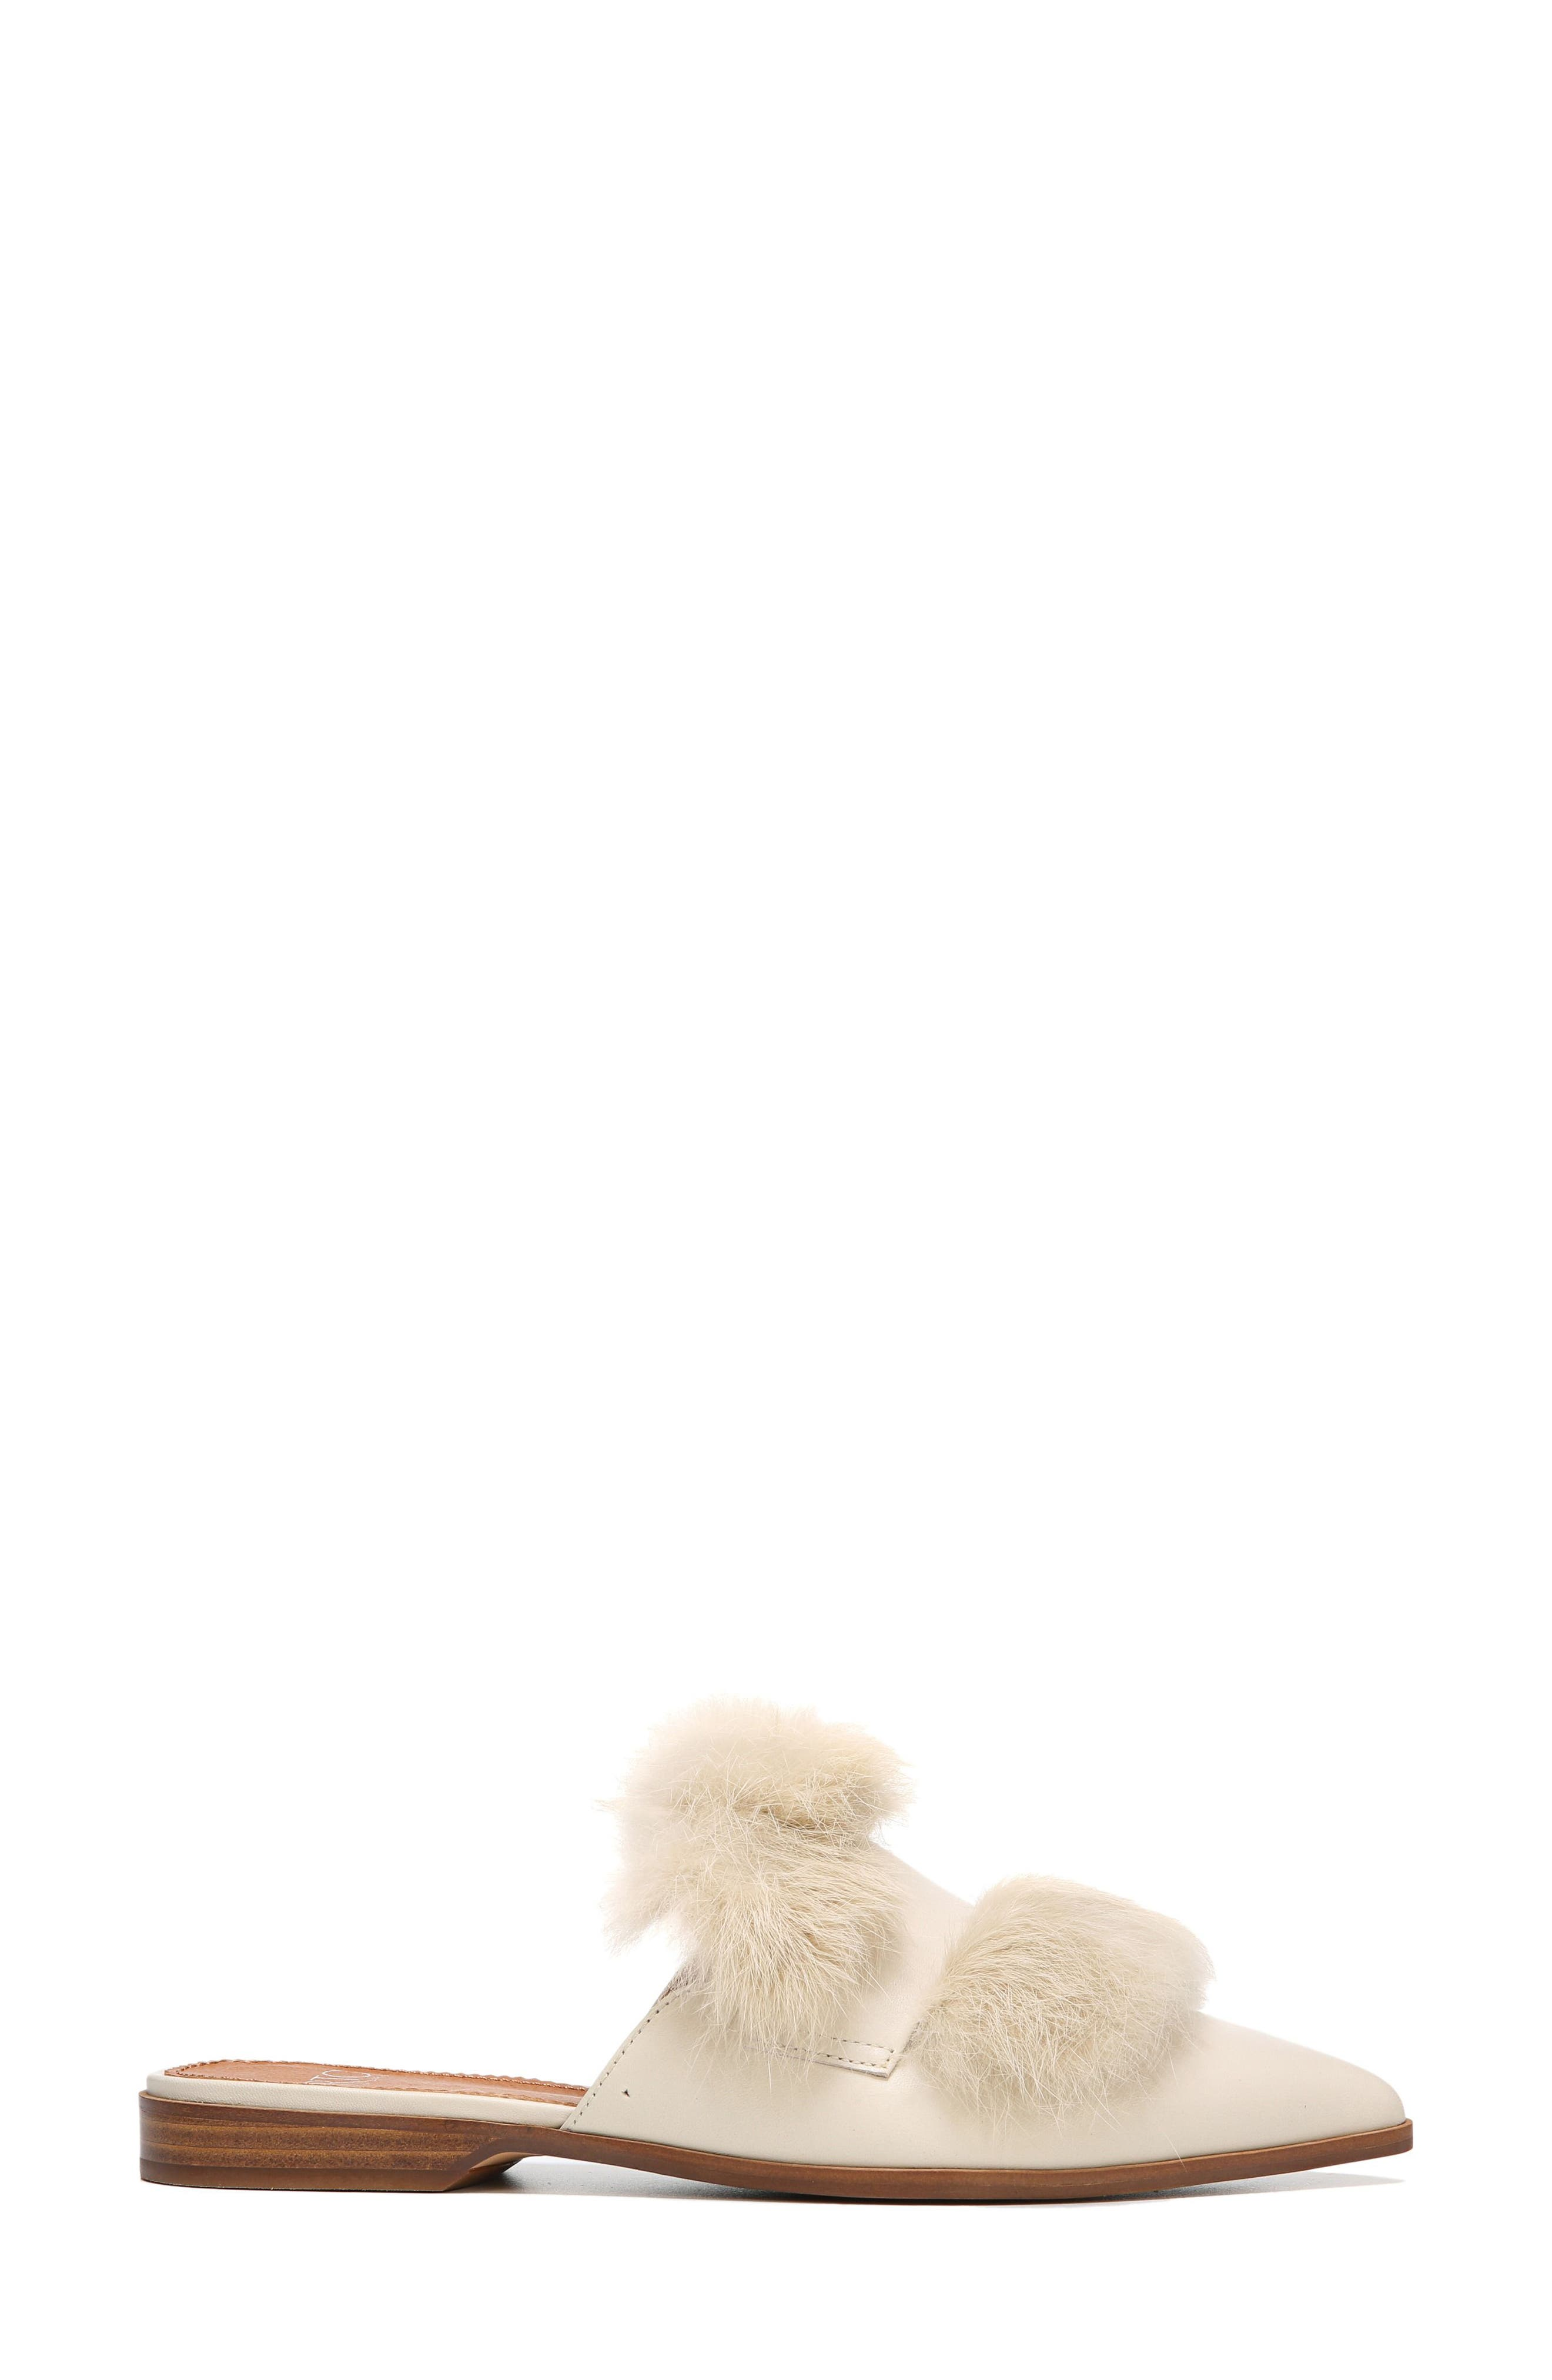 Palmer II Genuine Rabbit Fur Slide,                             Alternate thumbnail 3, color,                             Winter White Leather